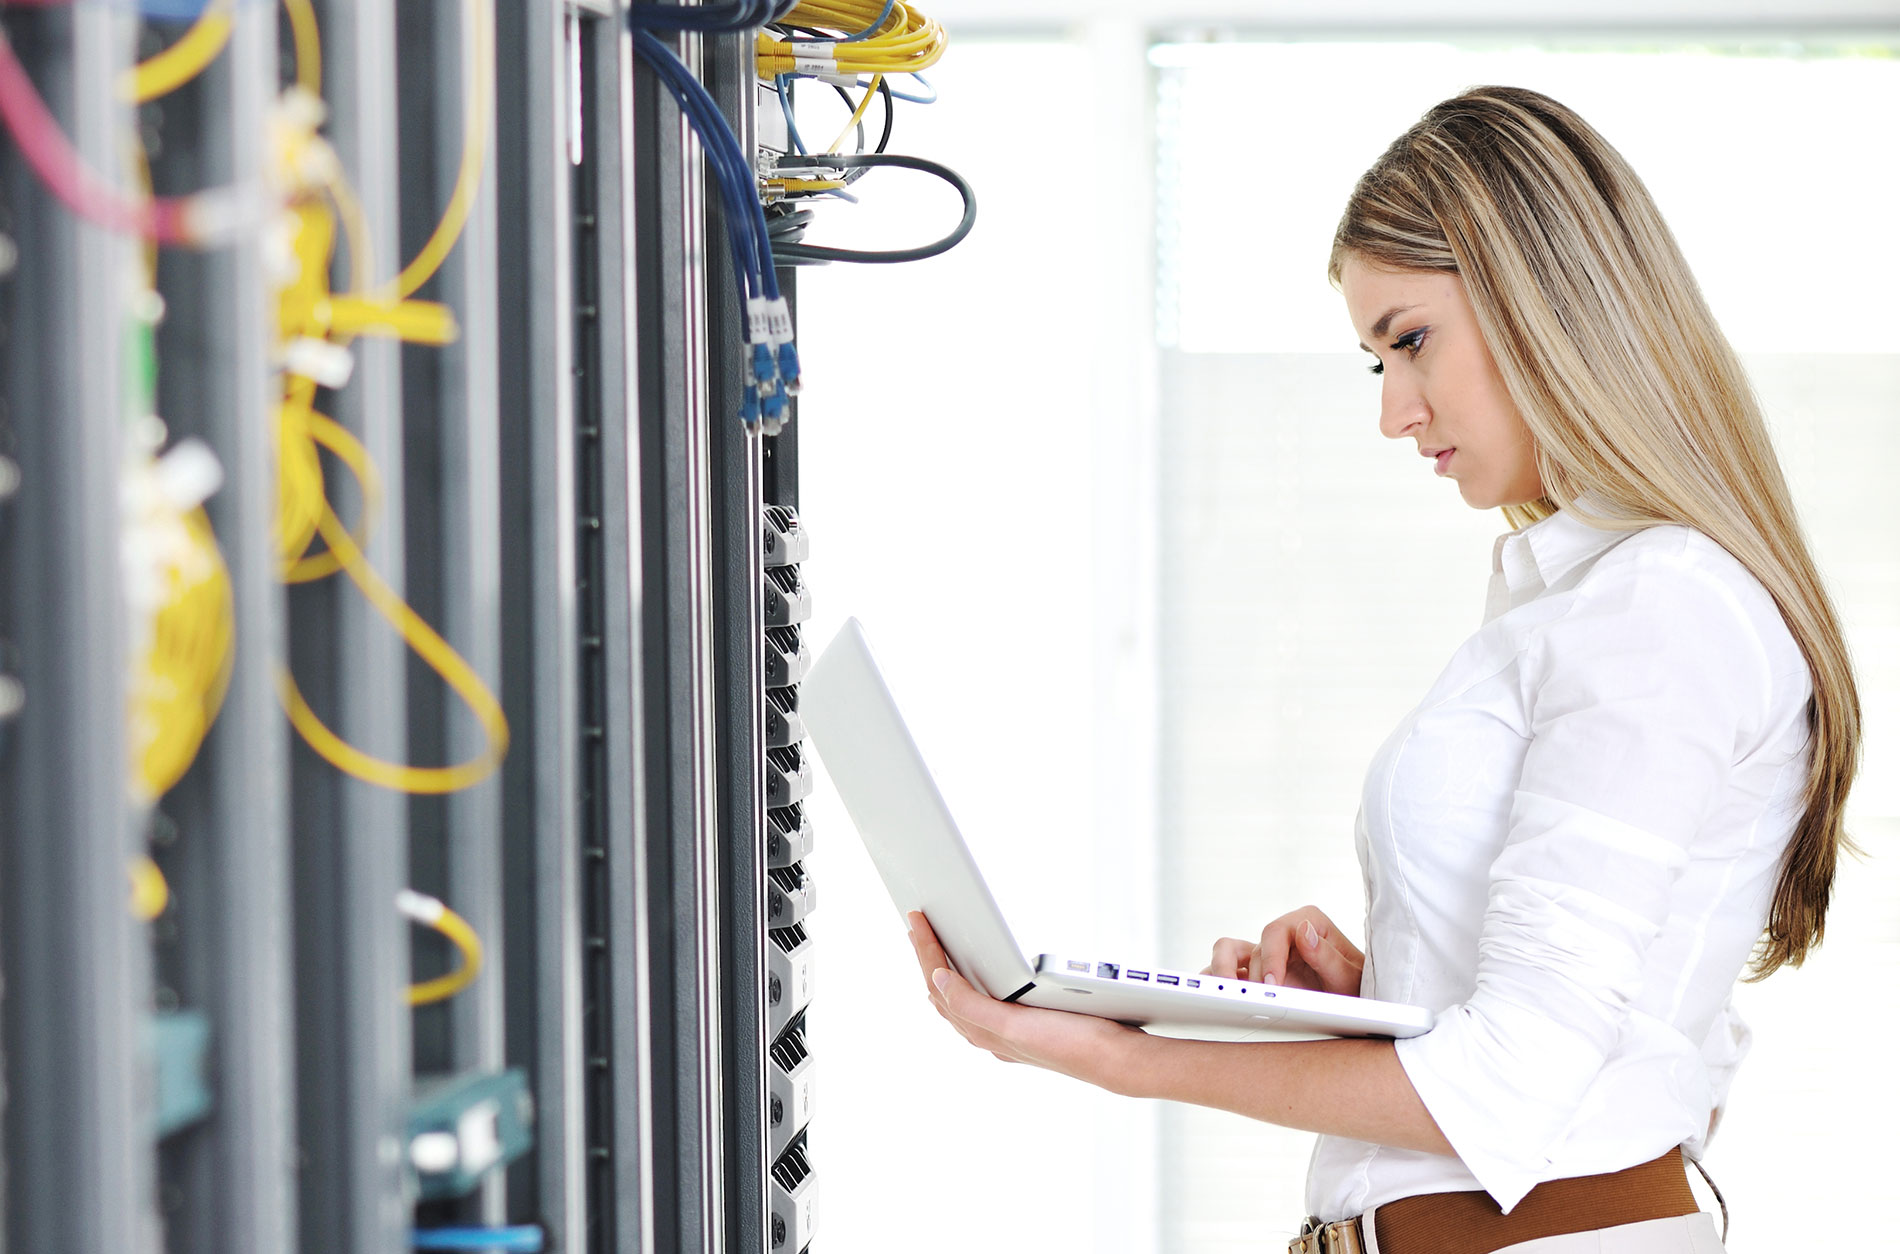 Computer Networking services in Michigan